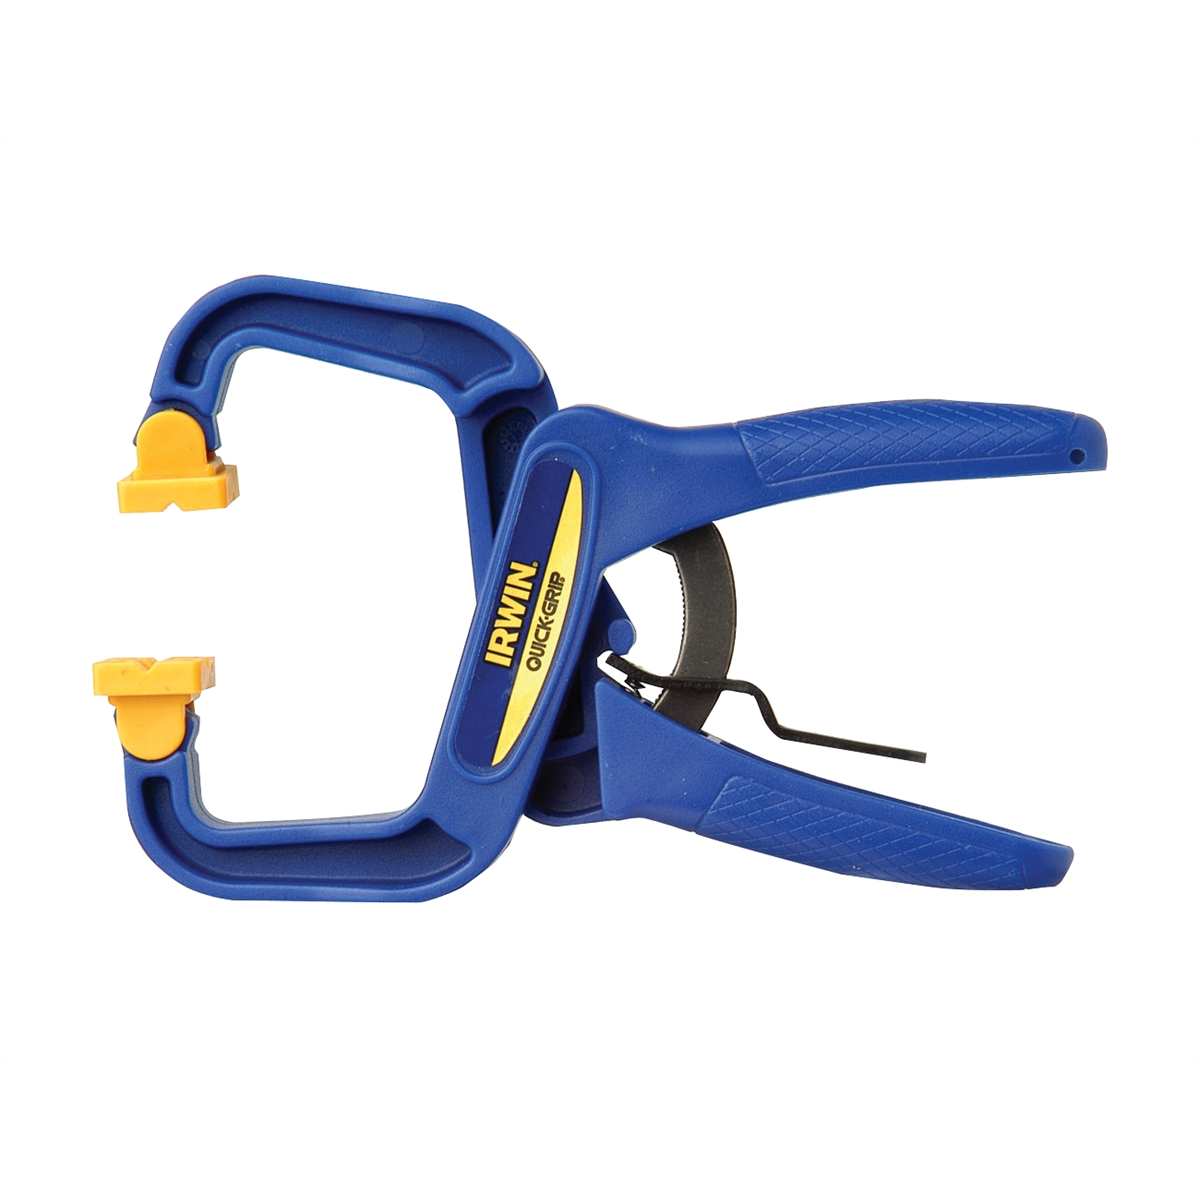 1-1/2in. Quick Grip Handi-Clamp